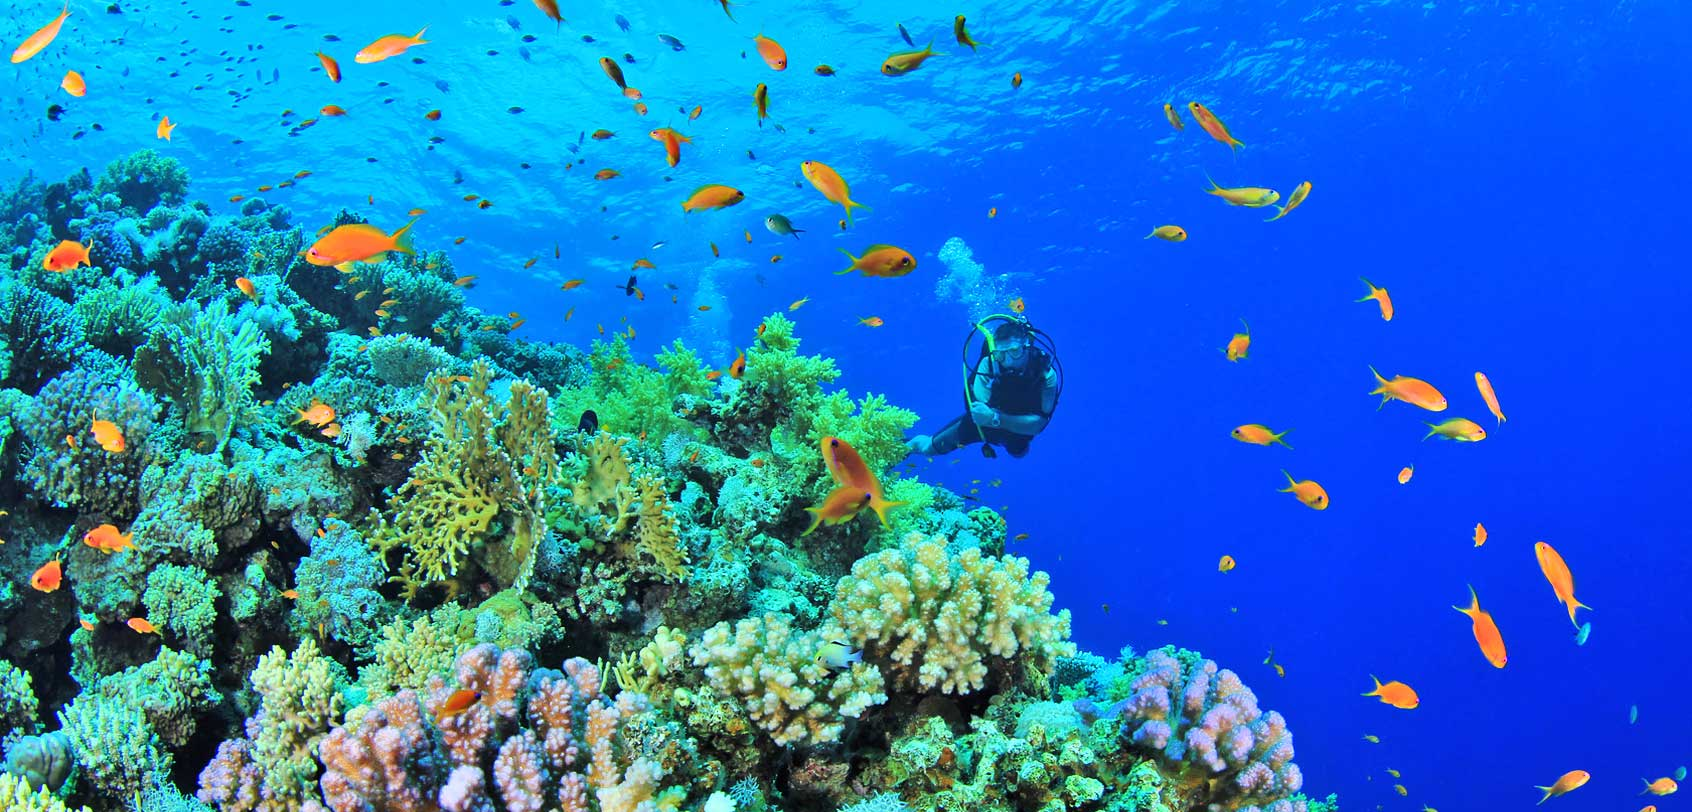 Reef Diving in Philippines Requires Basic Open Water Certification